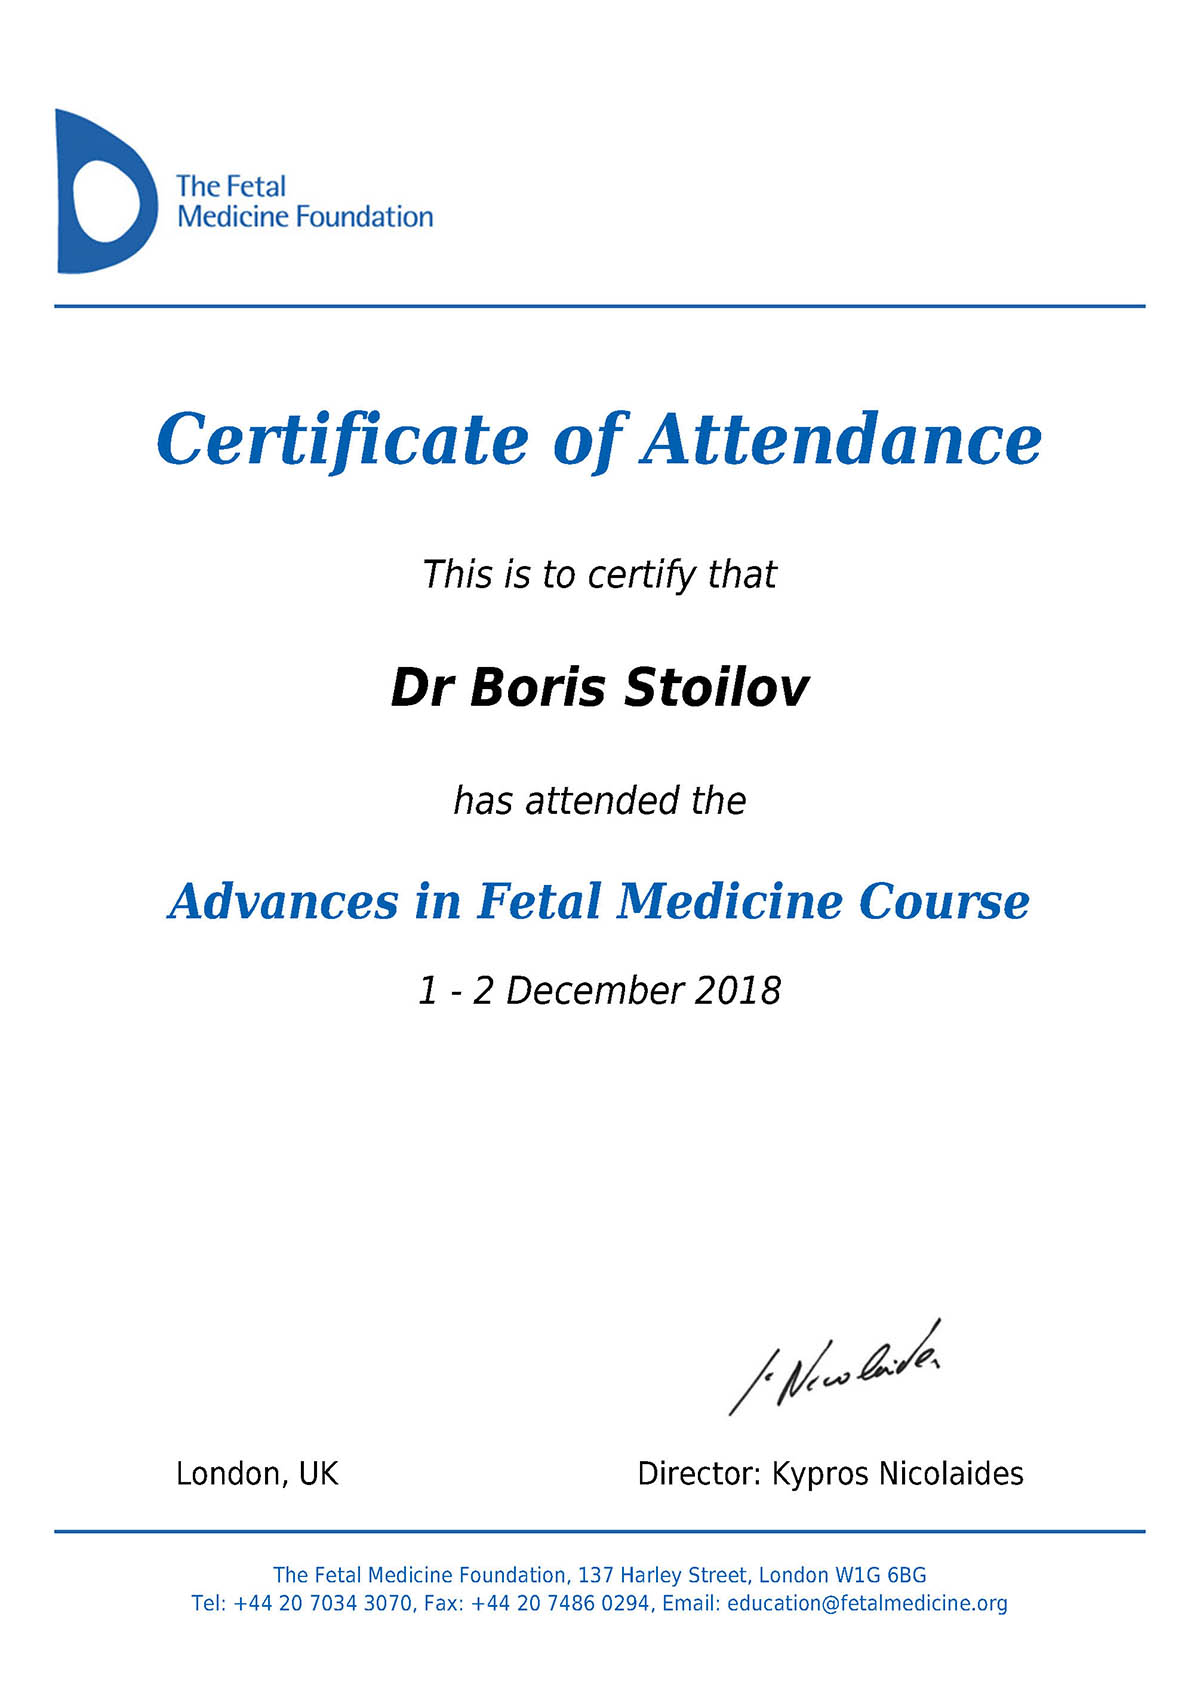 Advances in Fetal Medicine Course